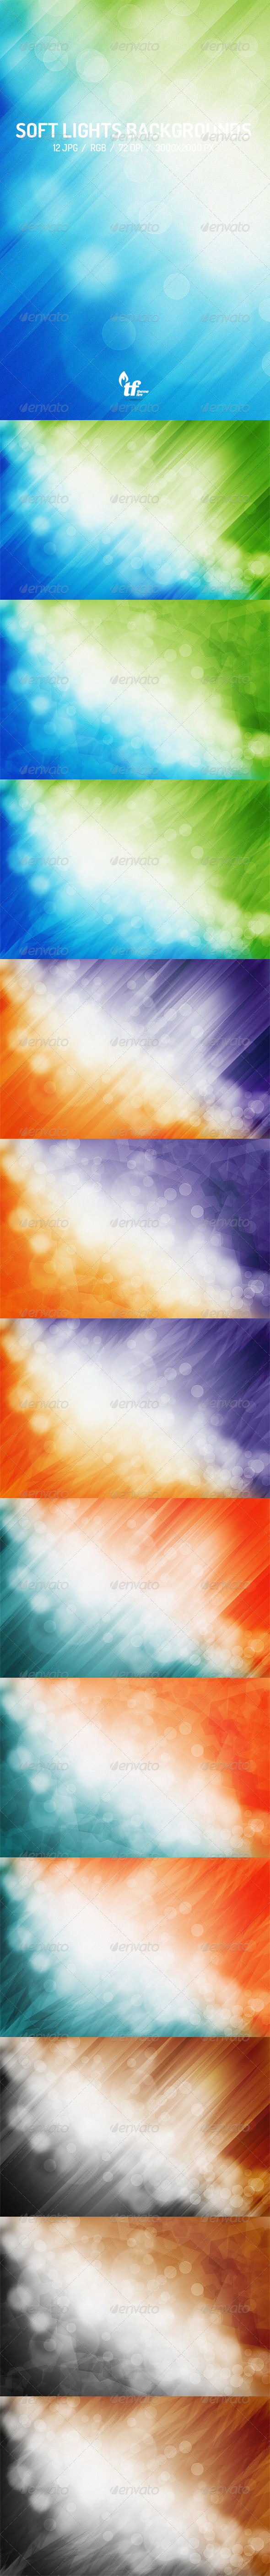 GraphicRiver Soft Lights Abstract Backgrounds 7715186